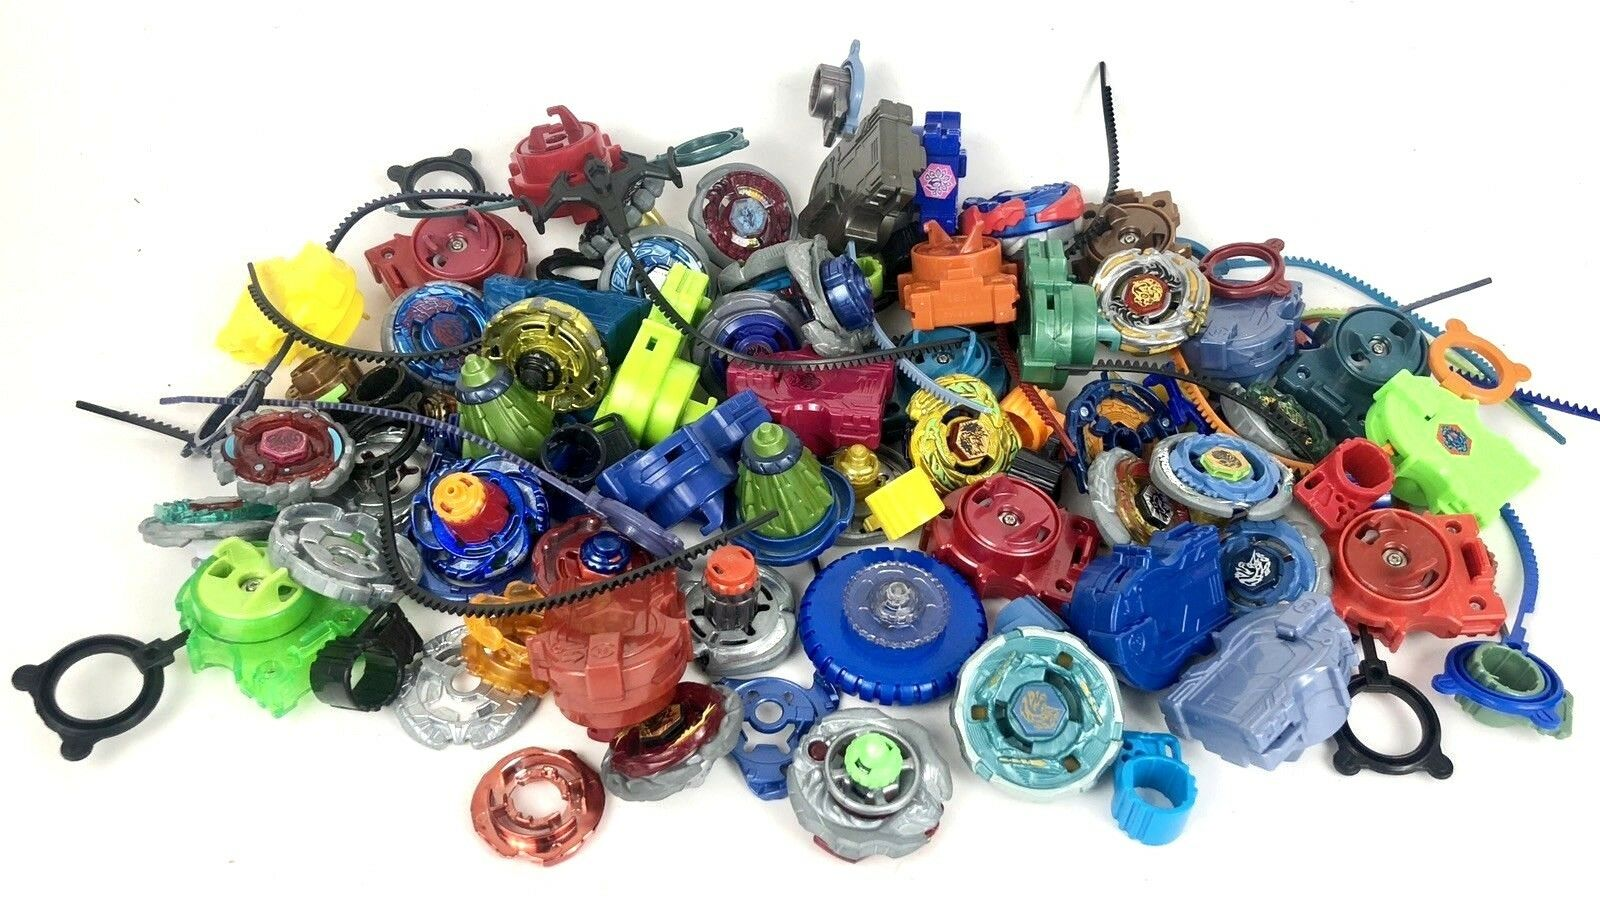 Huge Lot of 100+ BEYBLADE Metal Spinning Tops Parts Launchers Accessories 4lbs +